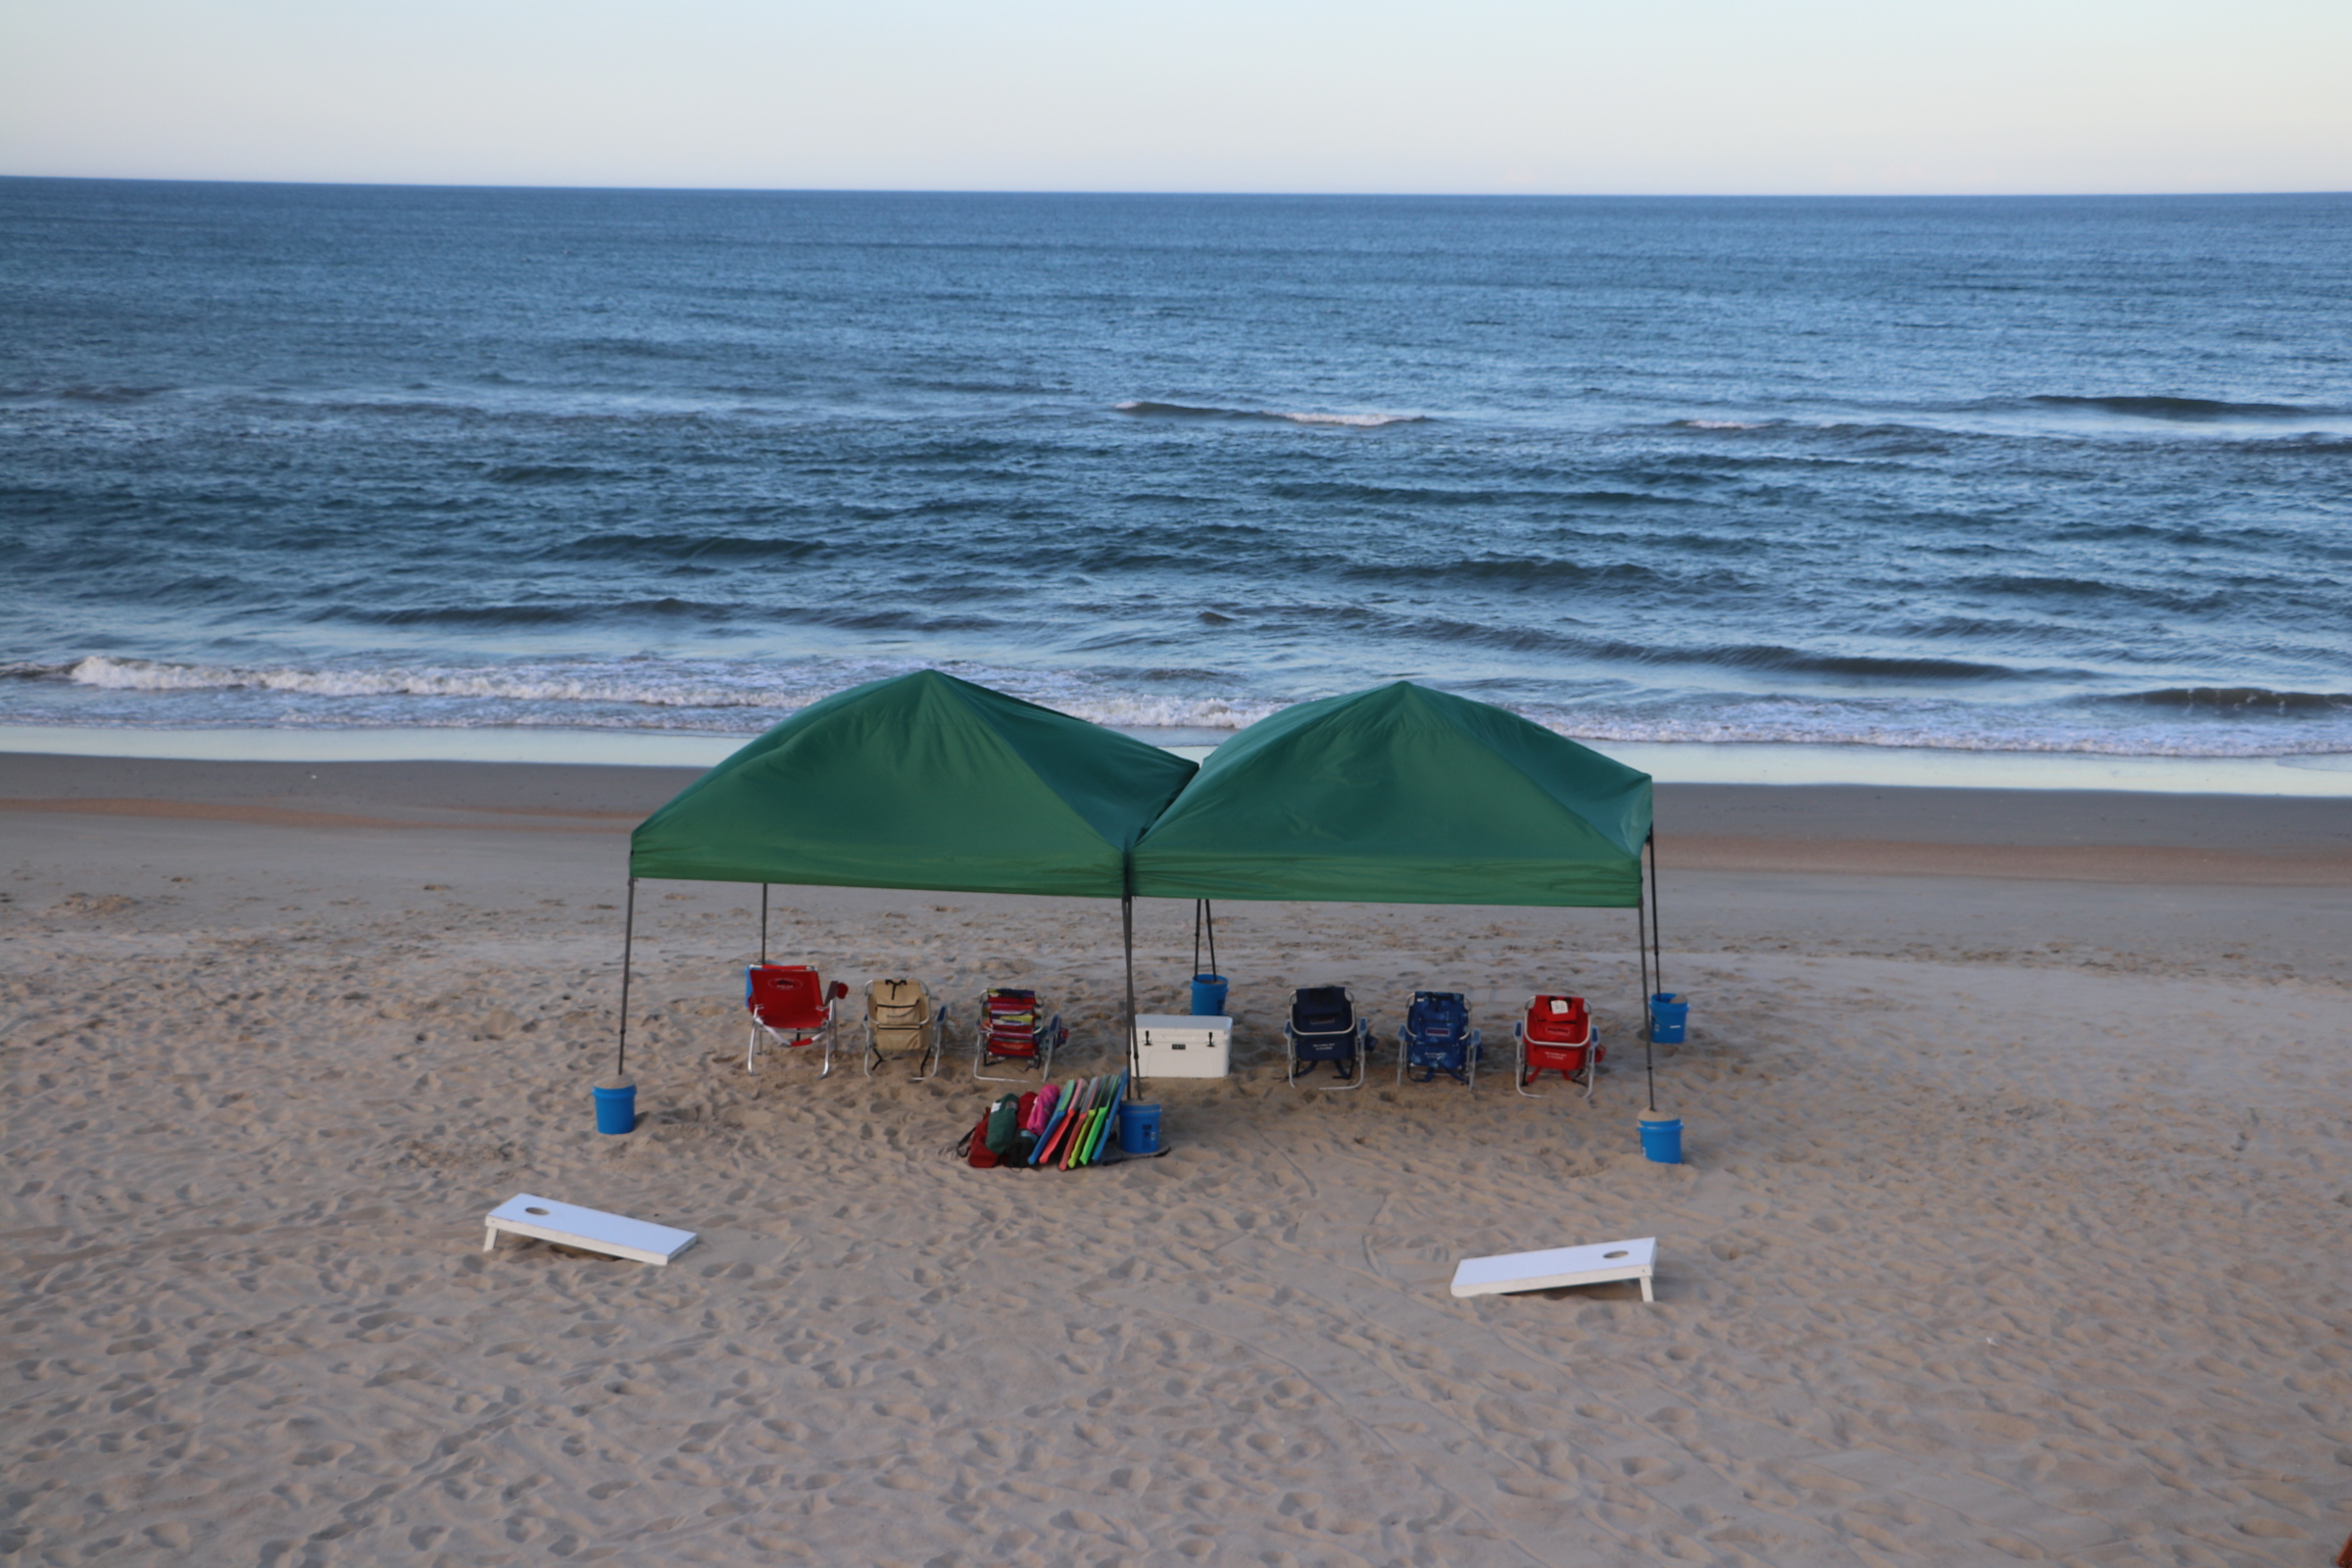 OBX beach equipment set up with tents, chairs and cornhole game